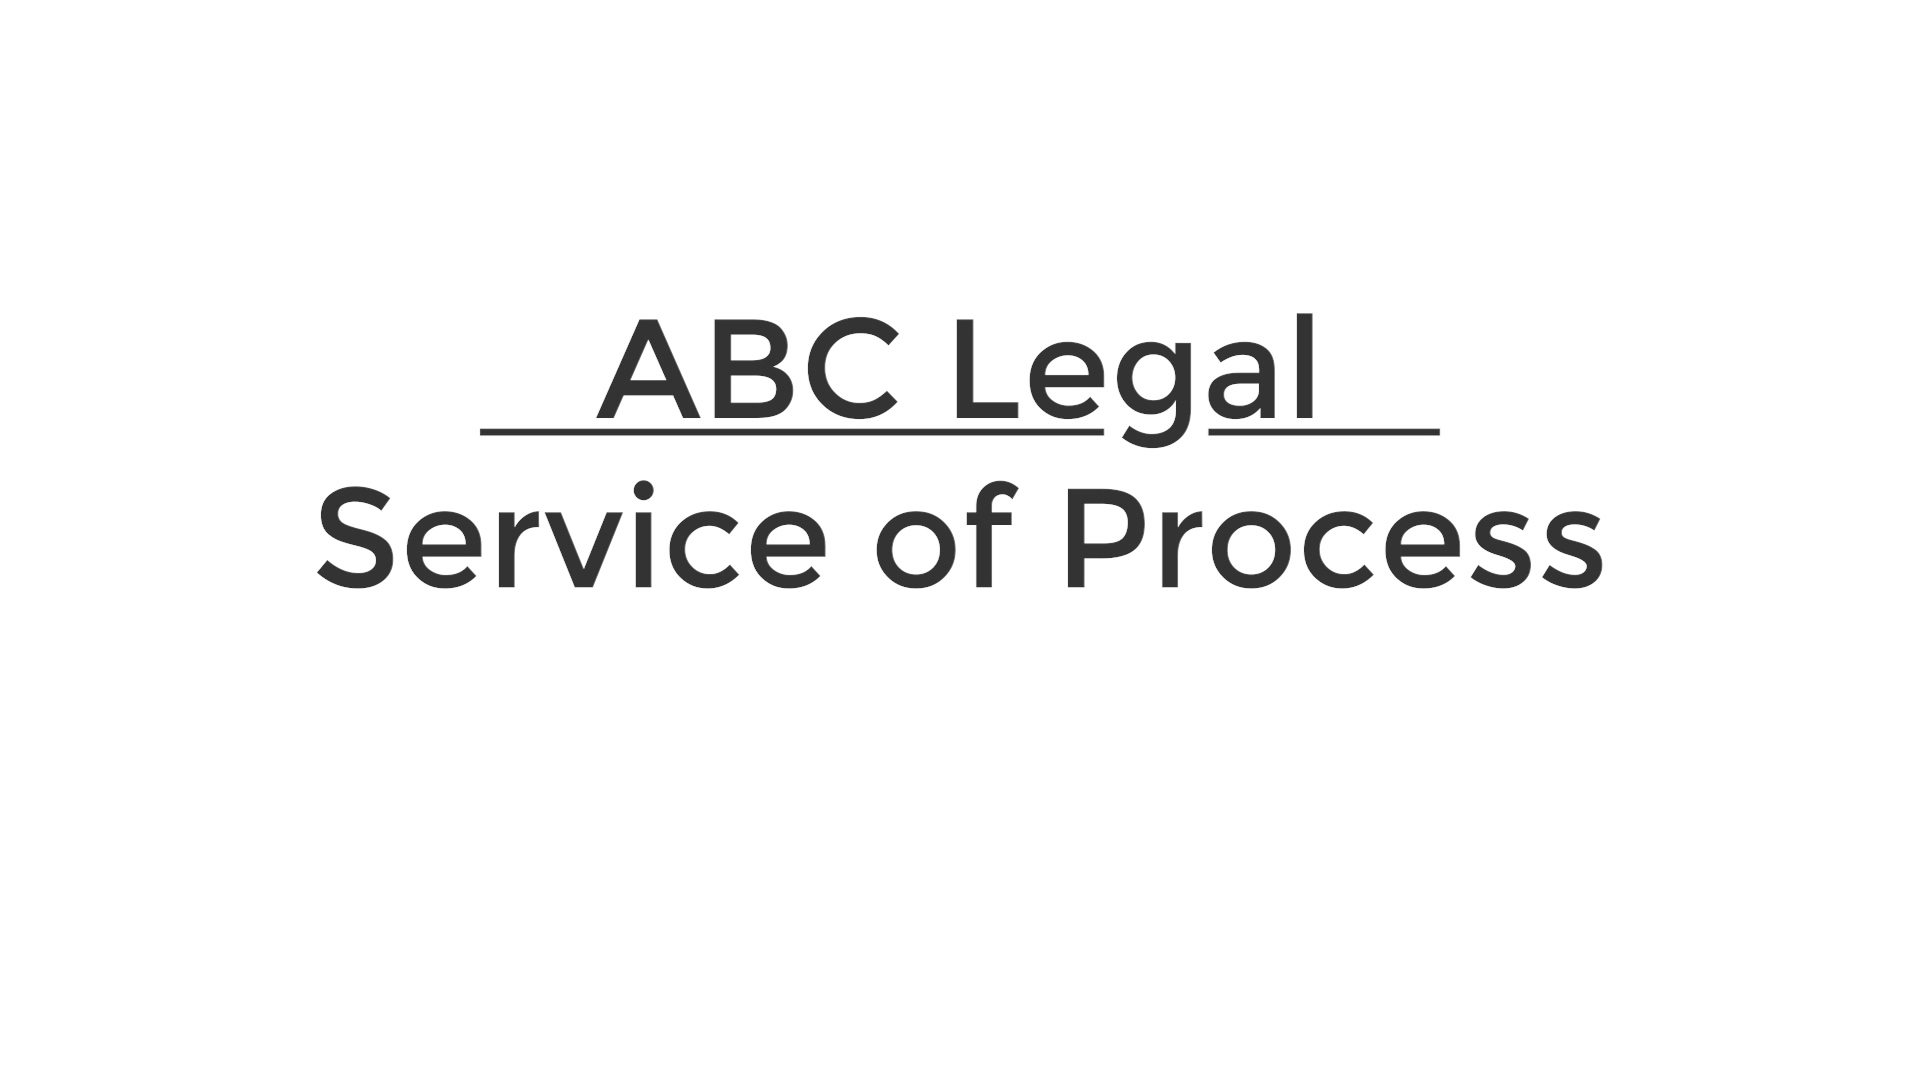 Intro to Service of Process 4.22.2021